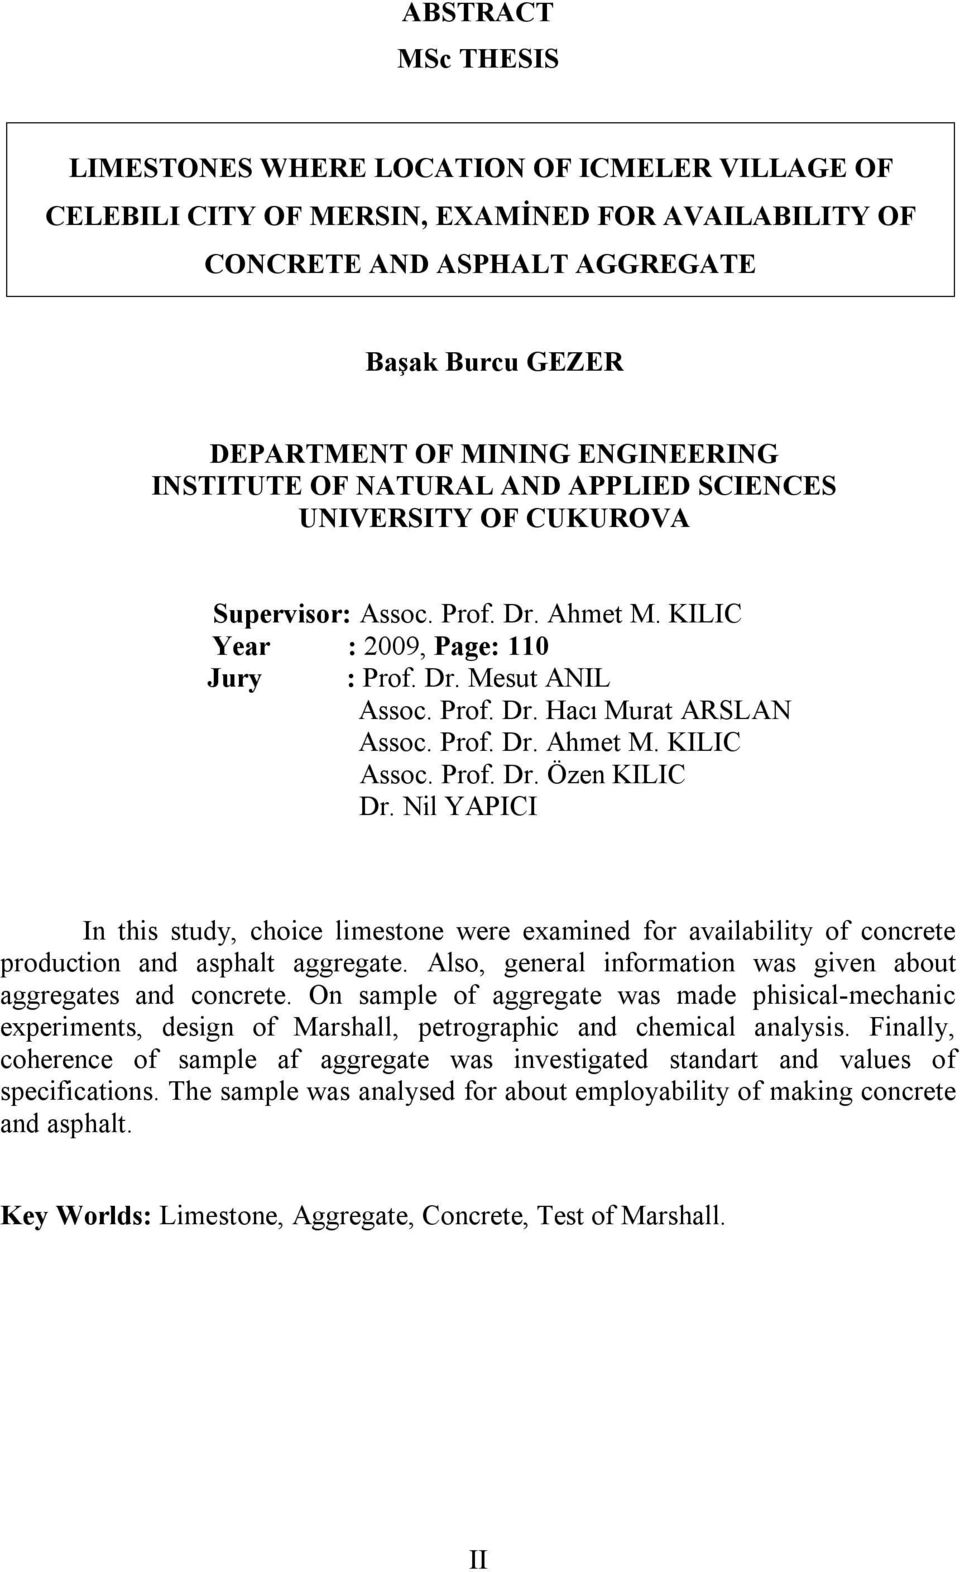 Prof. Dr. Ahmet M. KILIC Assoc. Prof. Dr. Özen KILIC Dr. Nil YAPICI In this study, choice limestone were examined for availability of concrete production and asphalt aggregate.